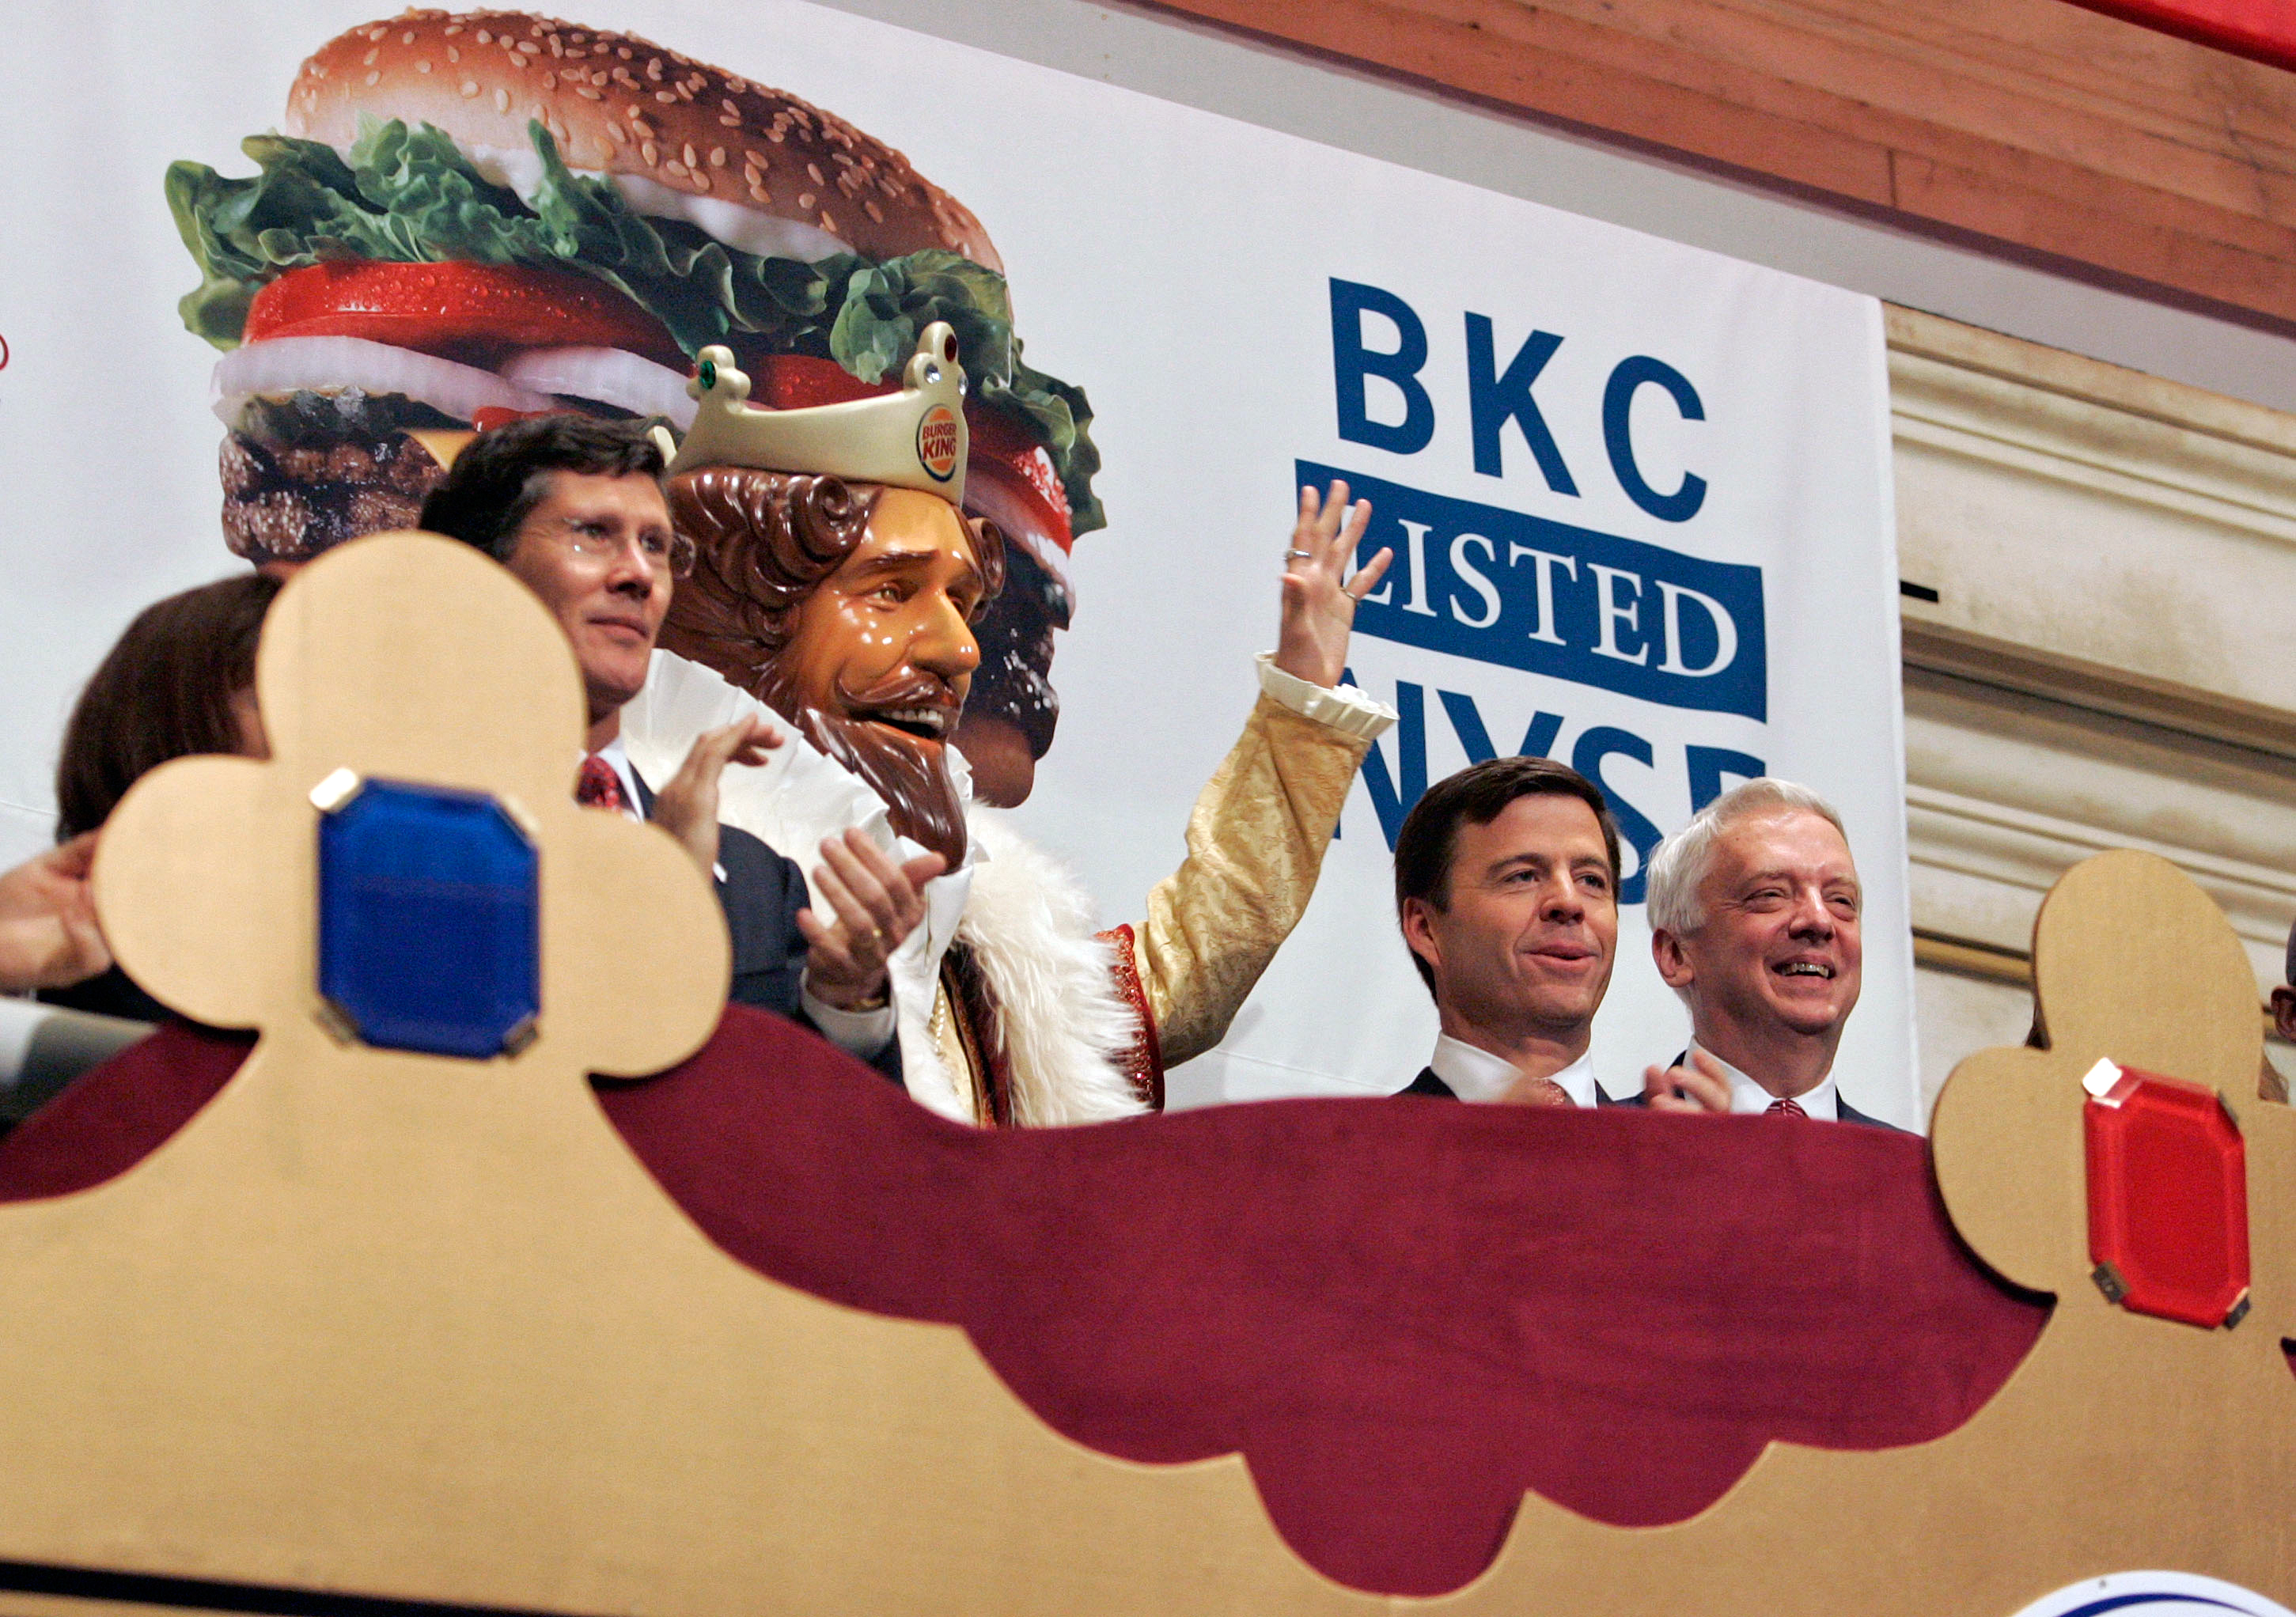 THE KING COMES HOME                                       In 1997, Grand Metropolitan merged with Guinness, forming Diageo. The new company decided to focus on liquor instead of food, and sold Burger King to a mix of private equity firms in 2002. The company went public with a New York Stock Exchange listing in 2006.